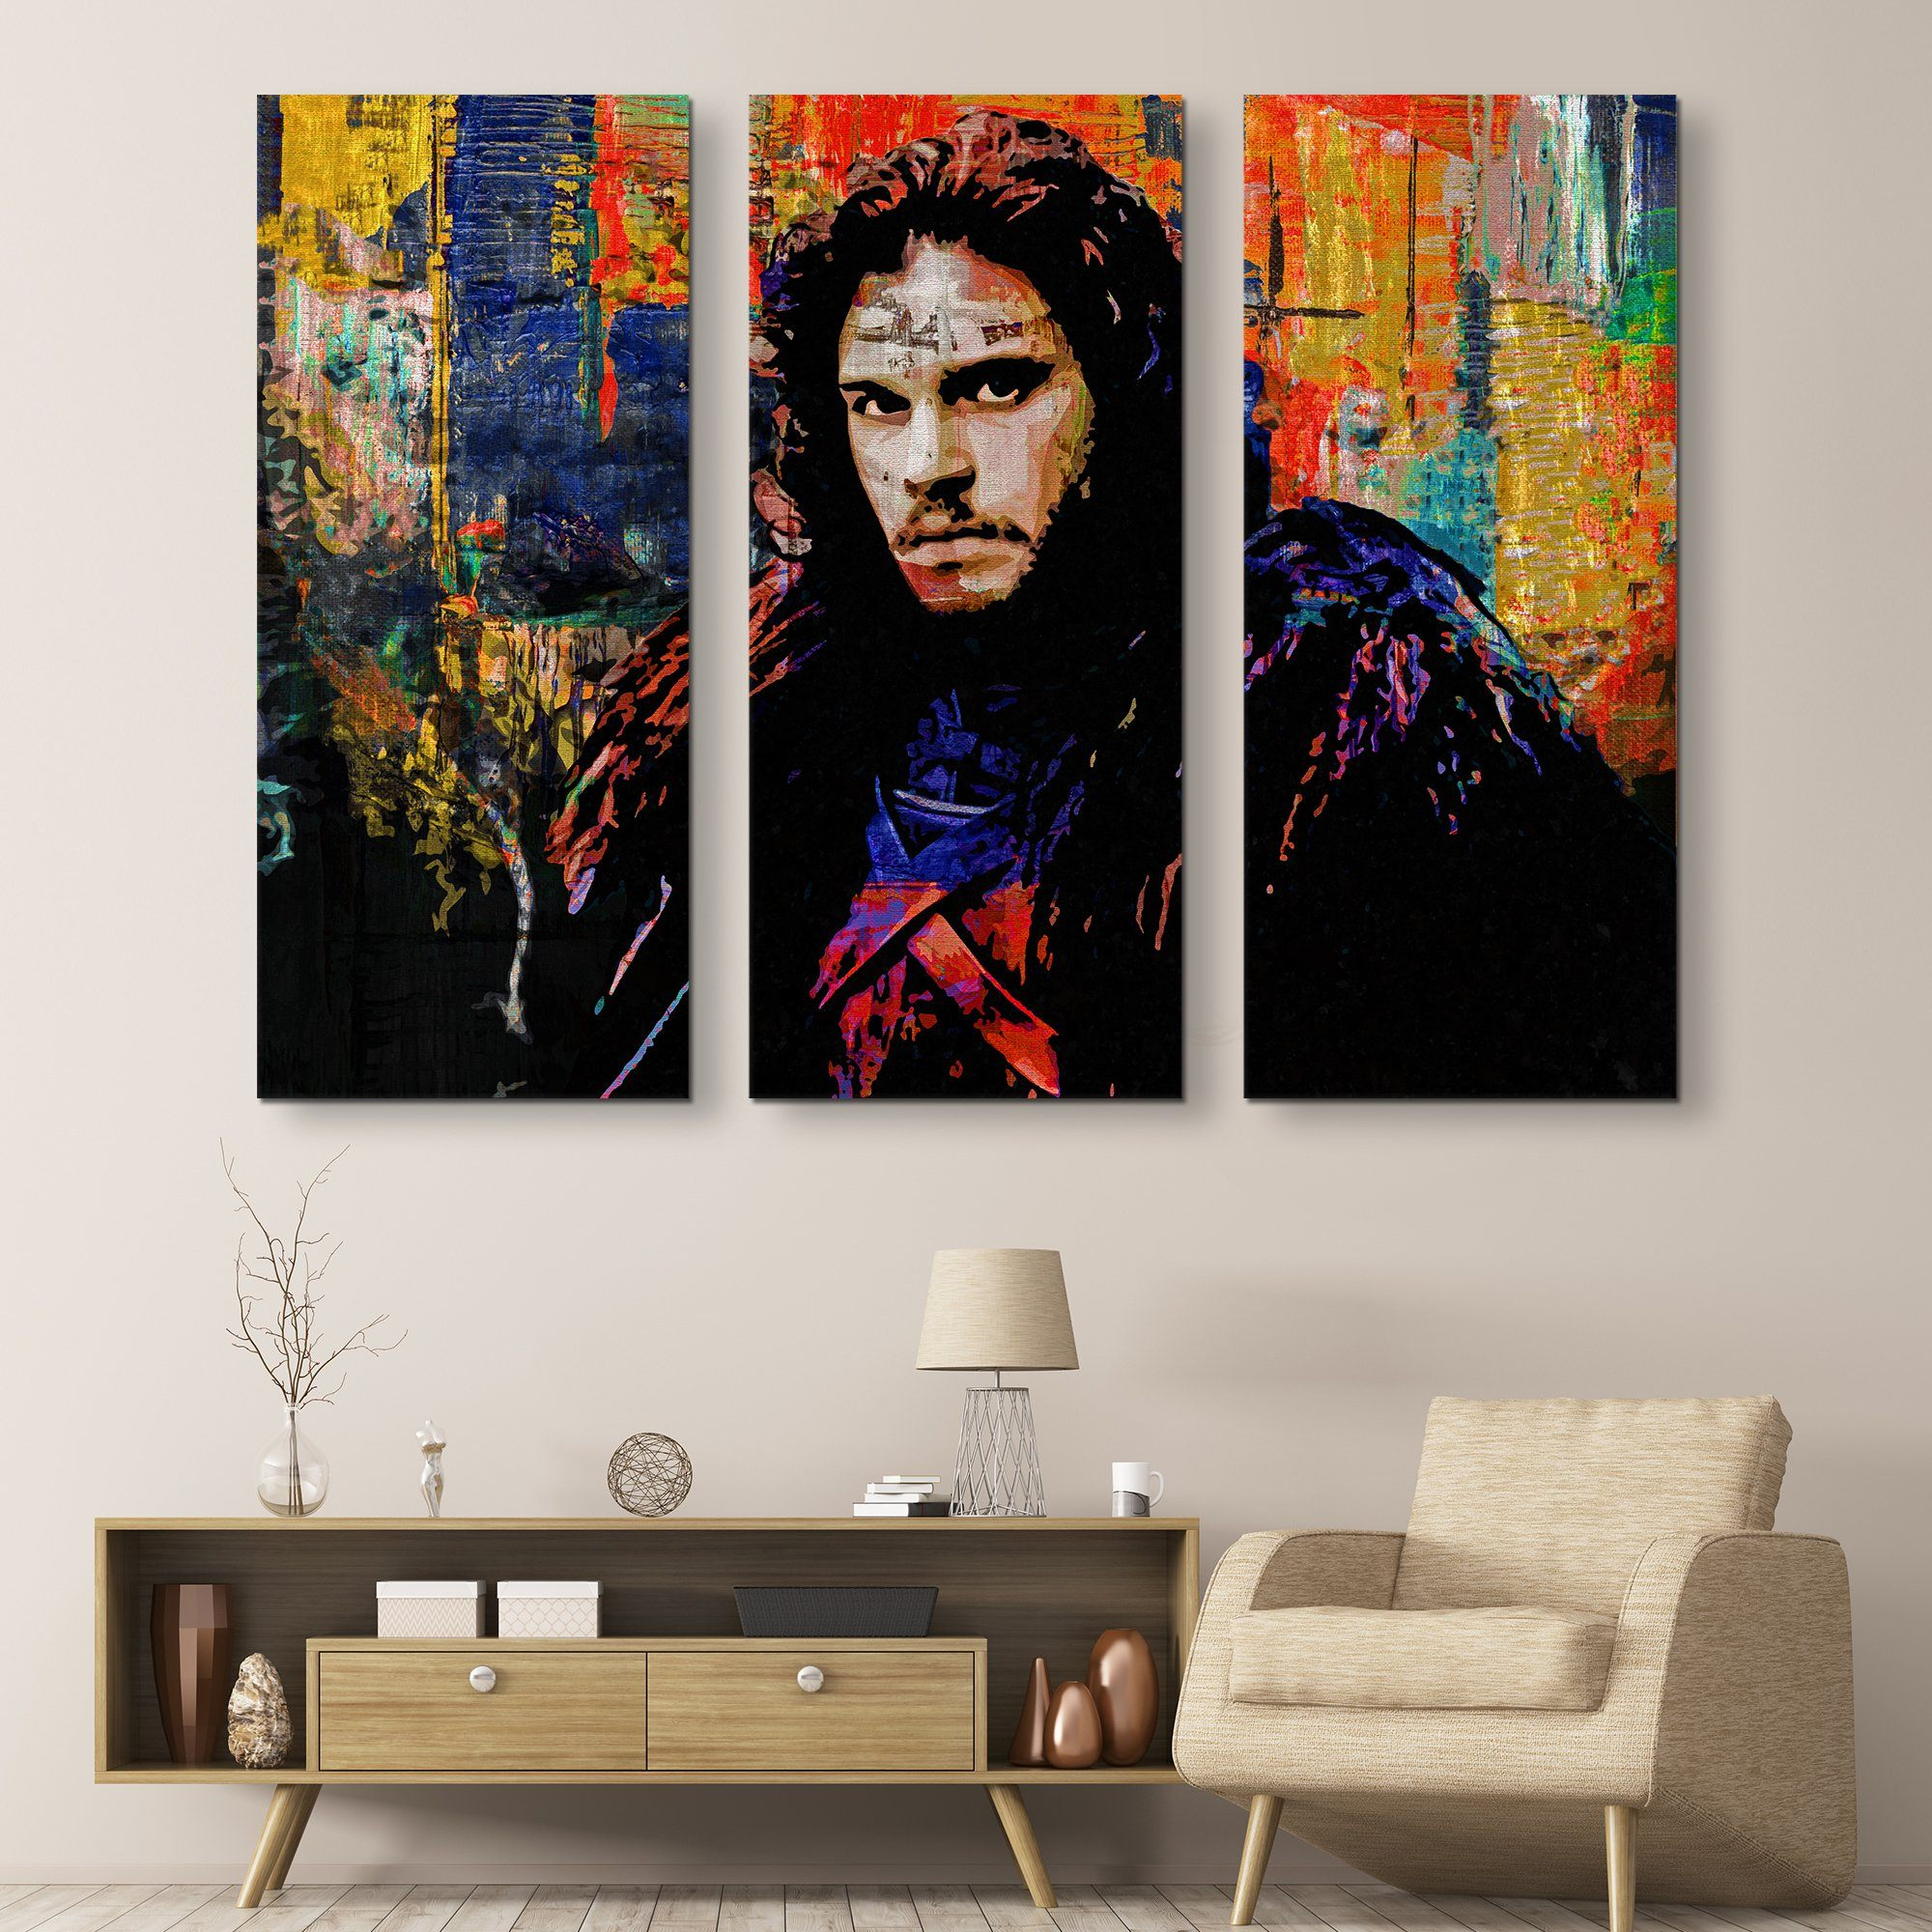 3 piece Jon Snow wall art